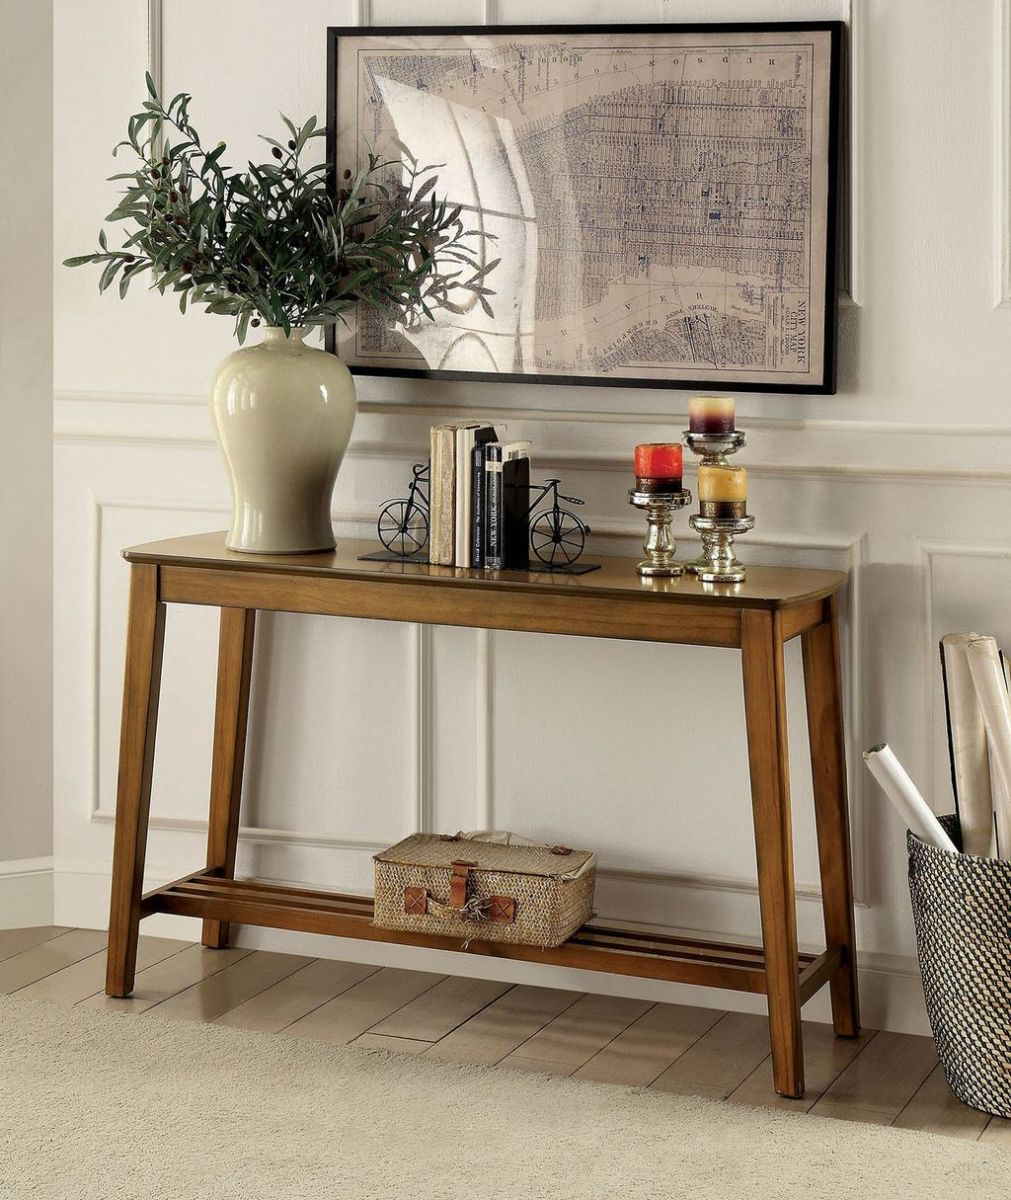 Amazing Sofa Table Decor Ideas You Should Try 14